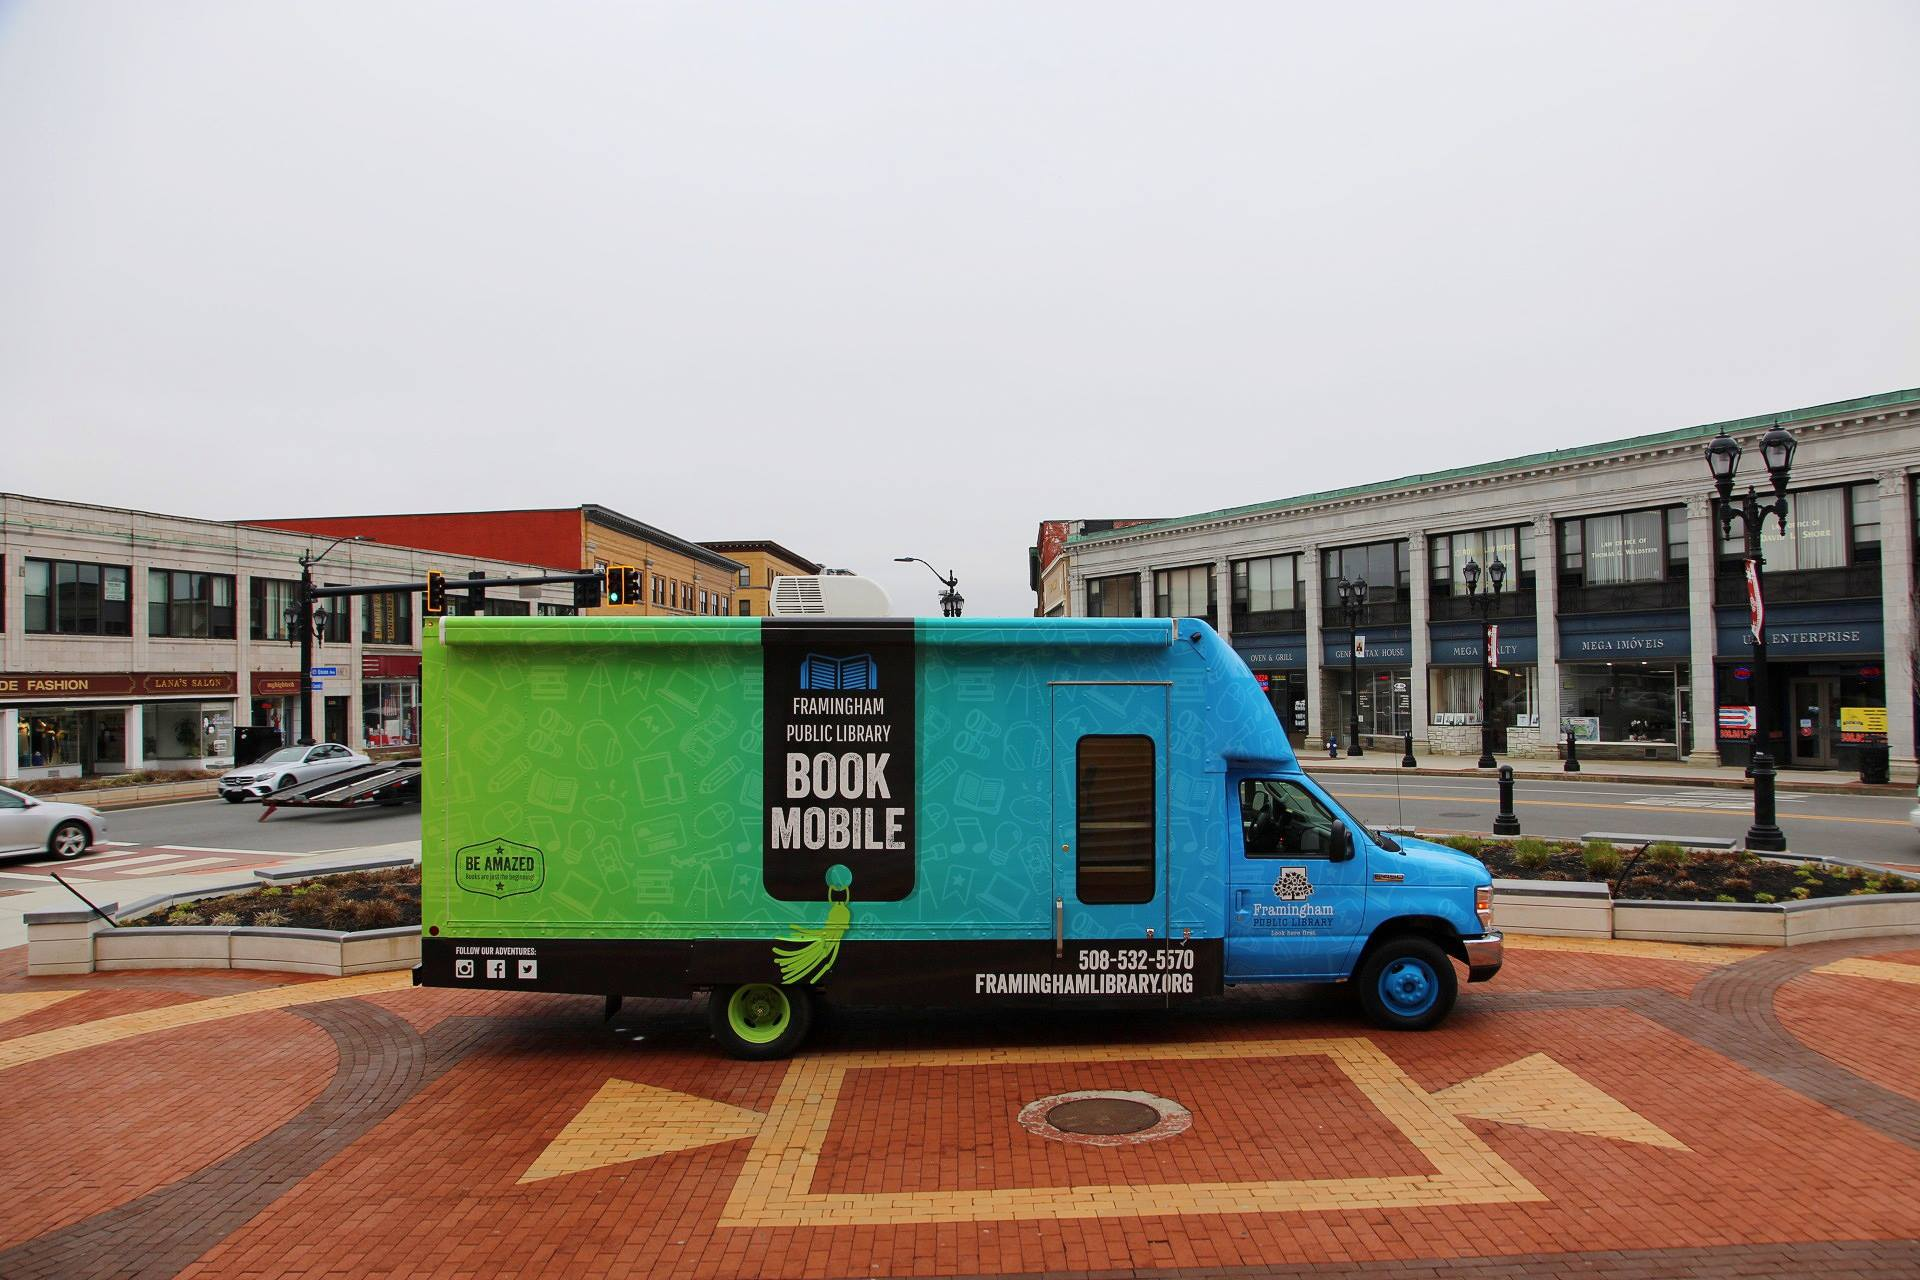 Framingham bookmobile parked on display in plaza in front of City Hall.